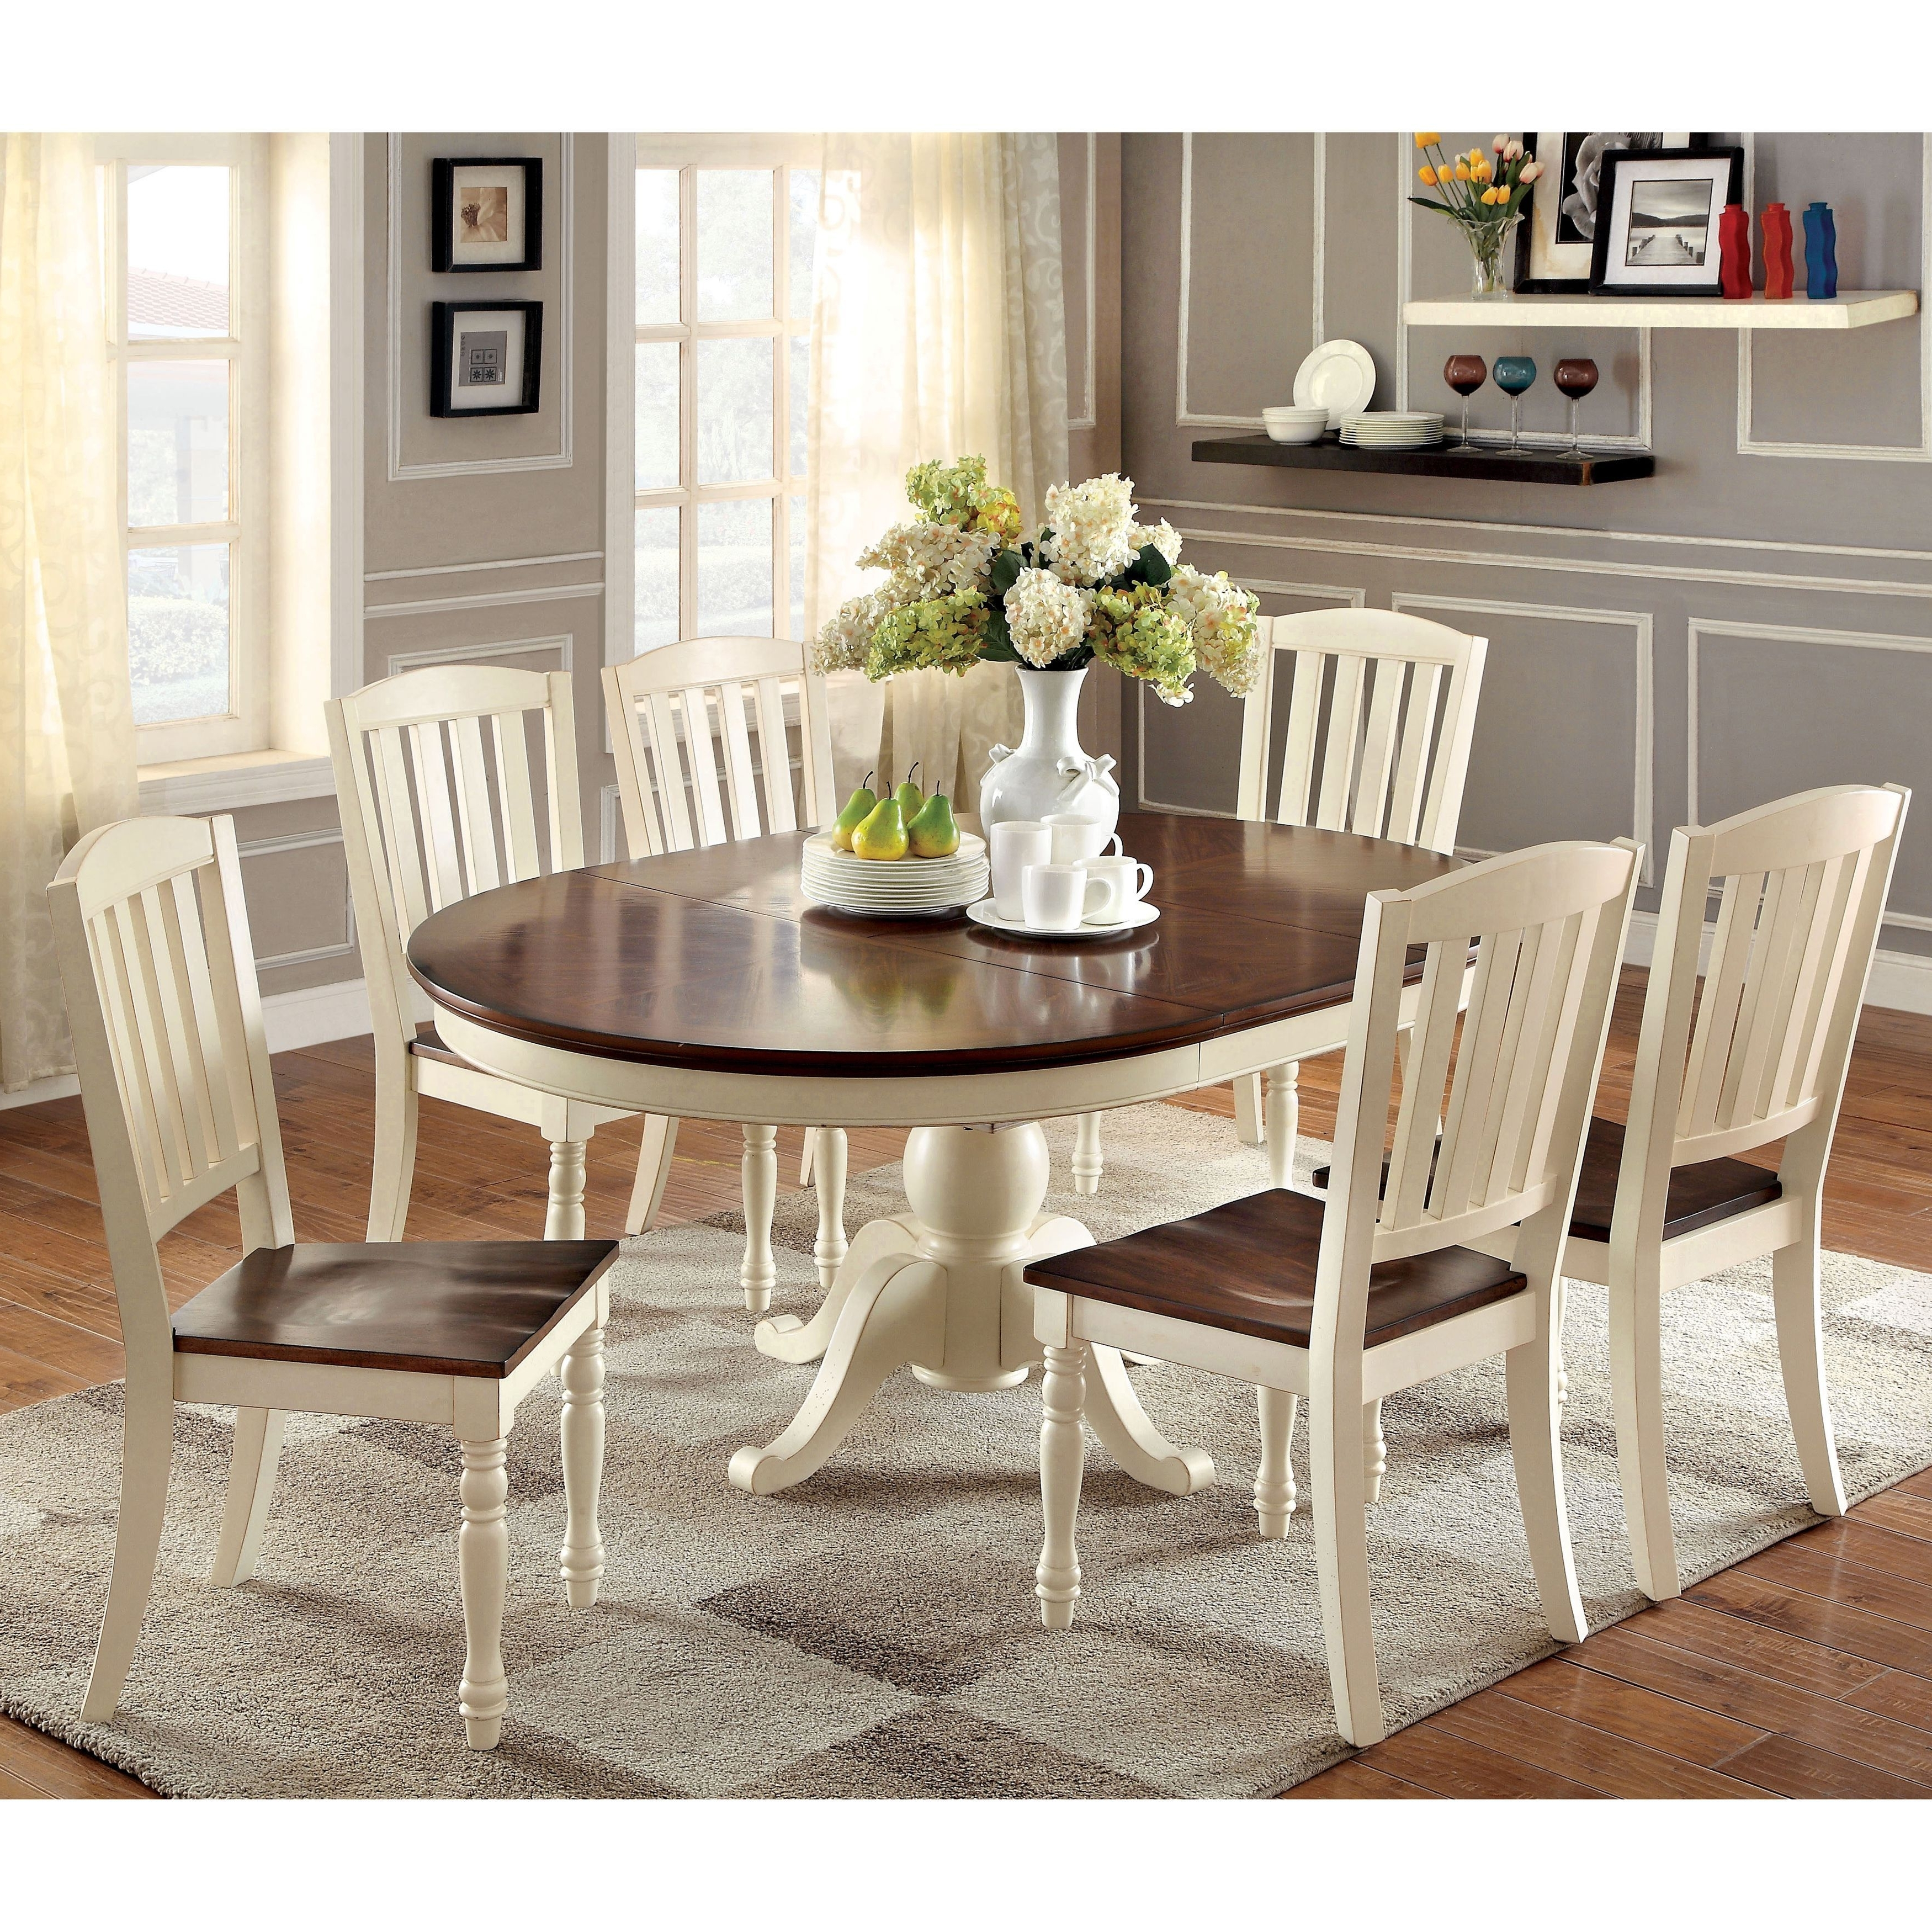 Current Furniture Of America Bethannie 7 Piece Cottage Style Oval Dining Set Regarding Kirsten 6 Piece Dining Sets (View 3 of 25)